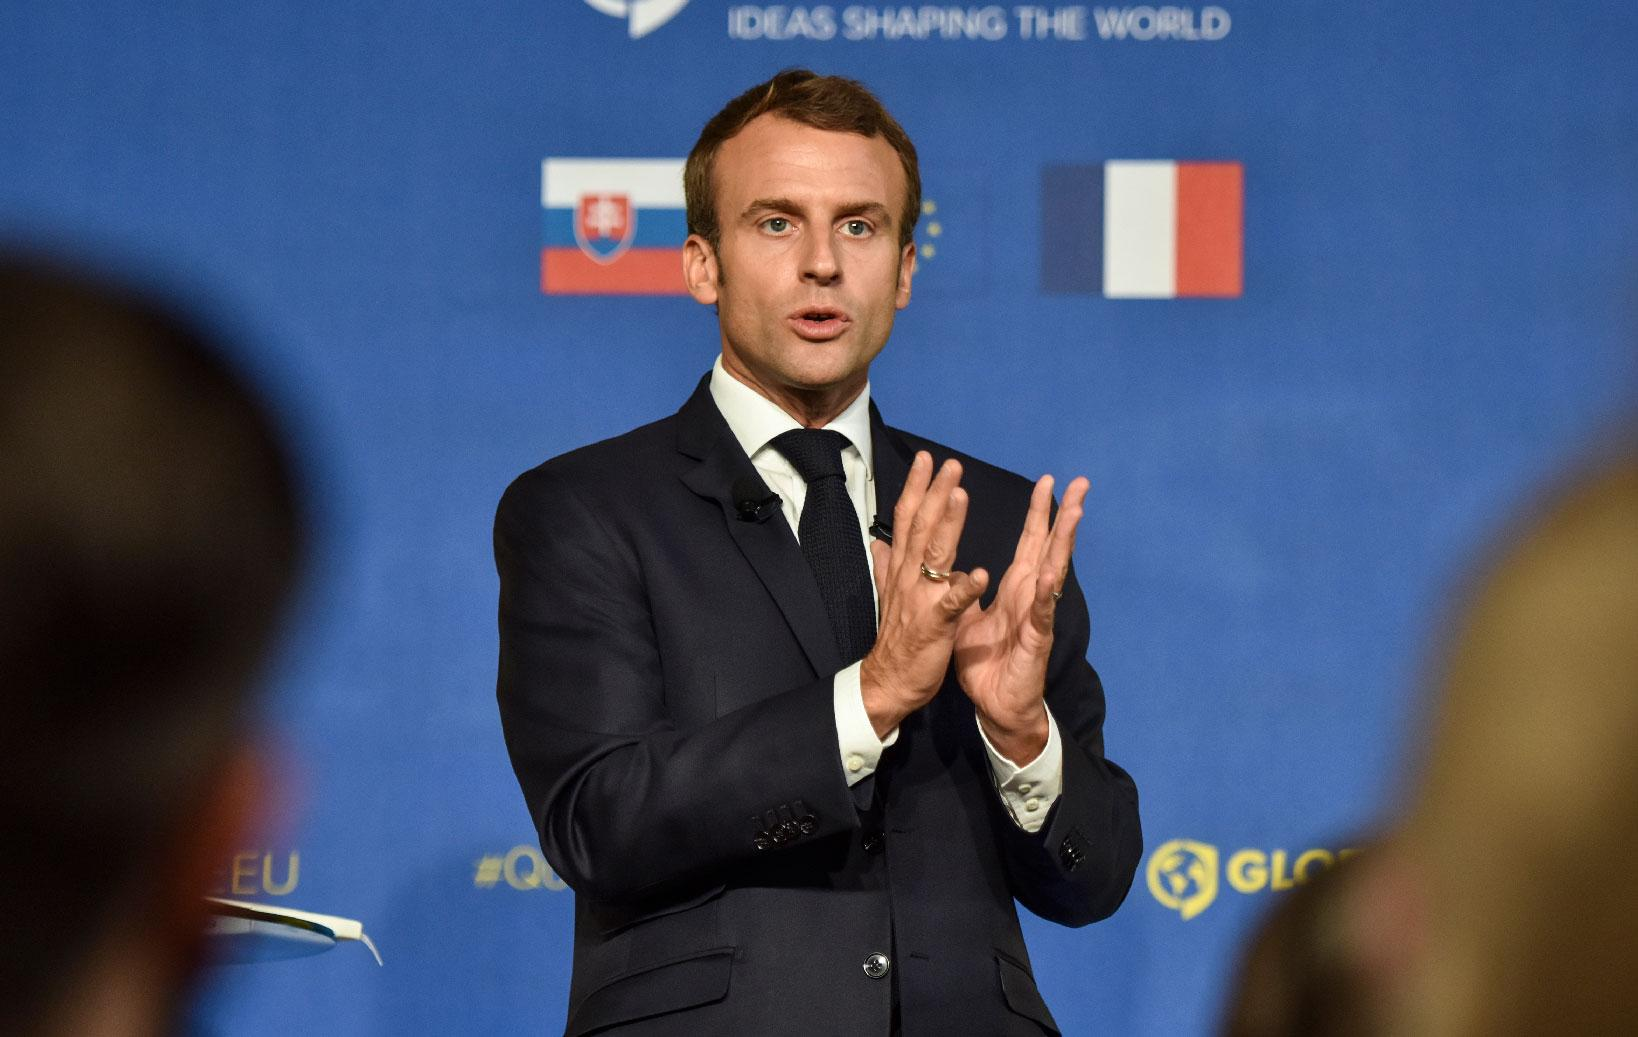 French President Emmanuel Macron speaks during the event 'Forming the Future of Europe' on 26 October 2018 in Bratislava, Slovakia.